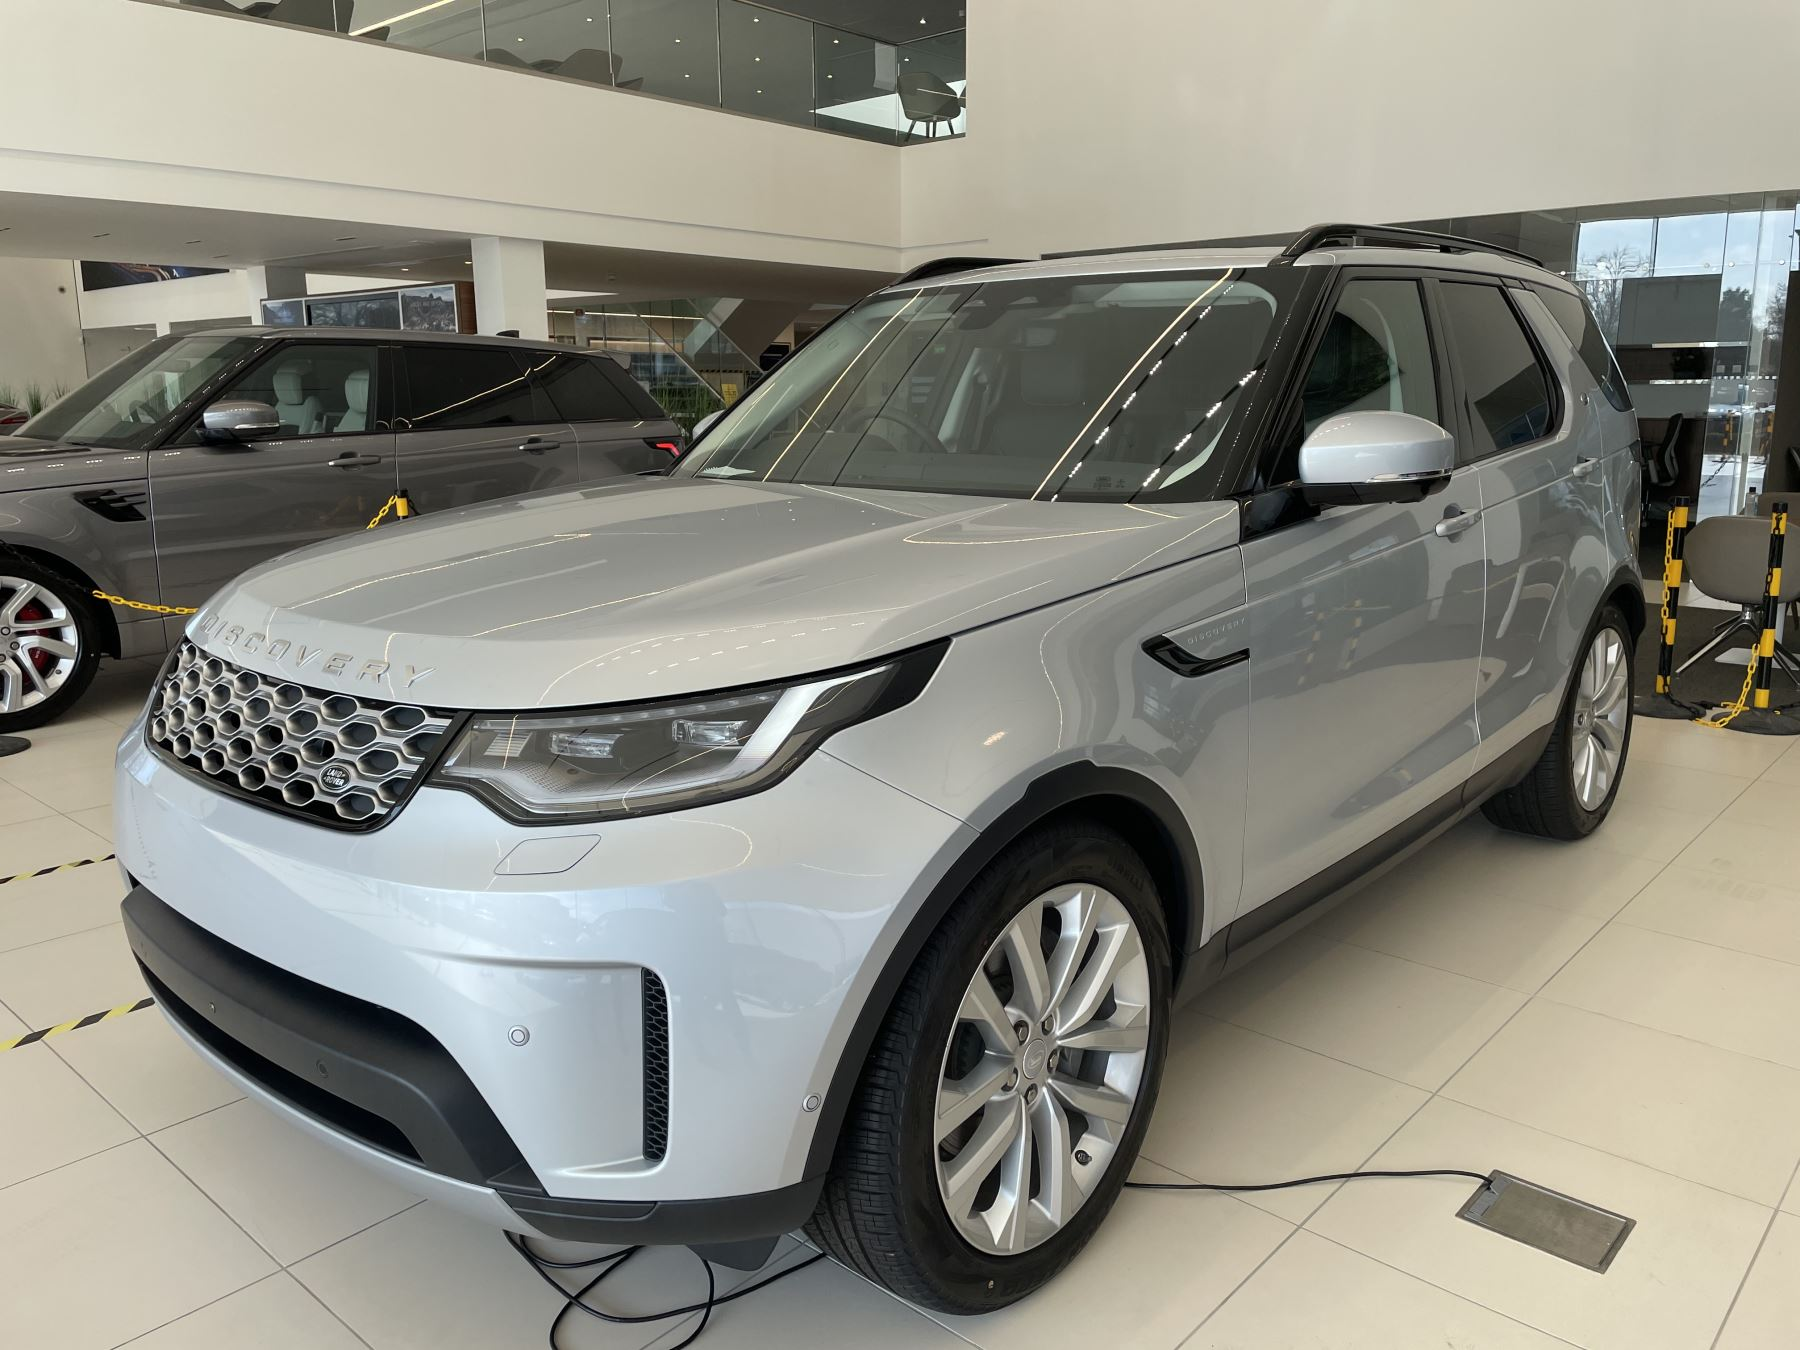 Land Rover Discovery 3.0 D300 SE COMMERCIAL 5dr Auto image 5